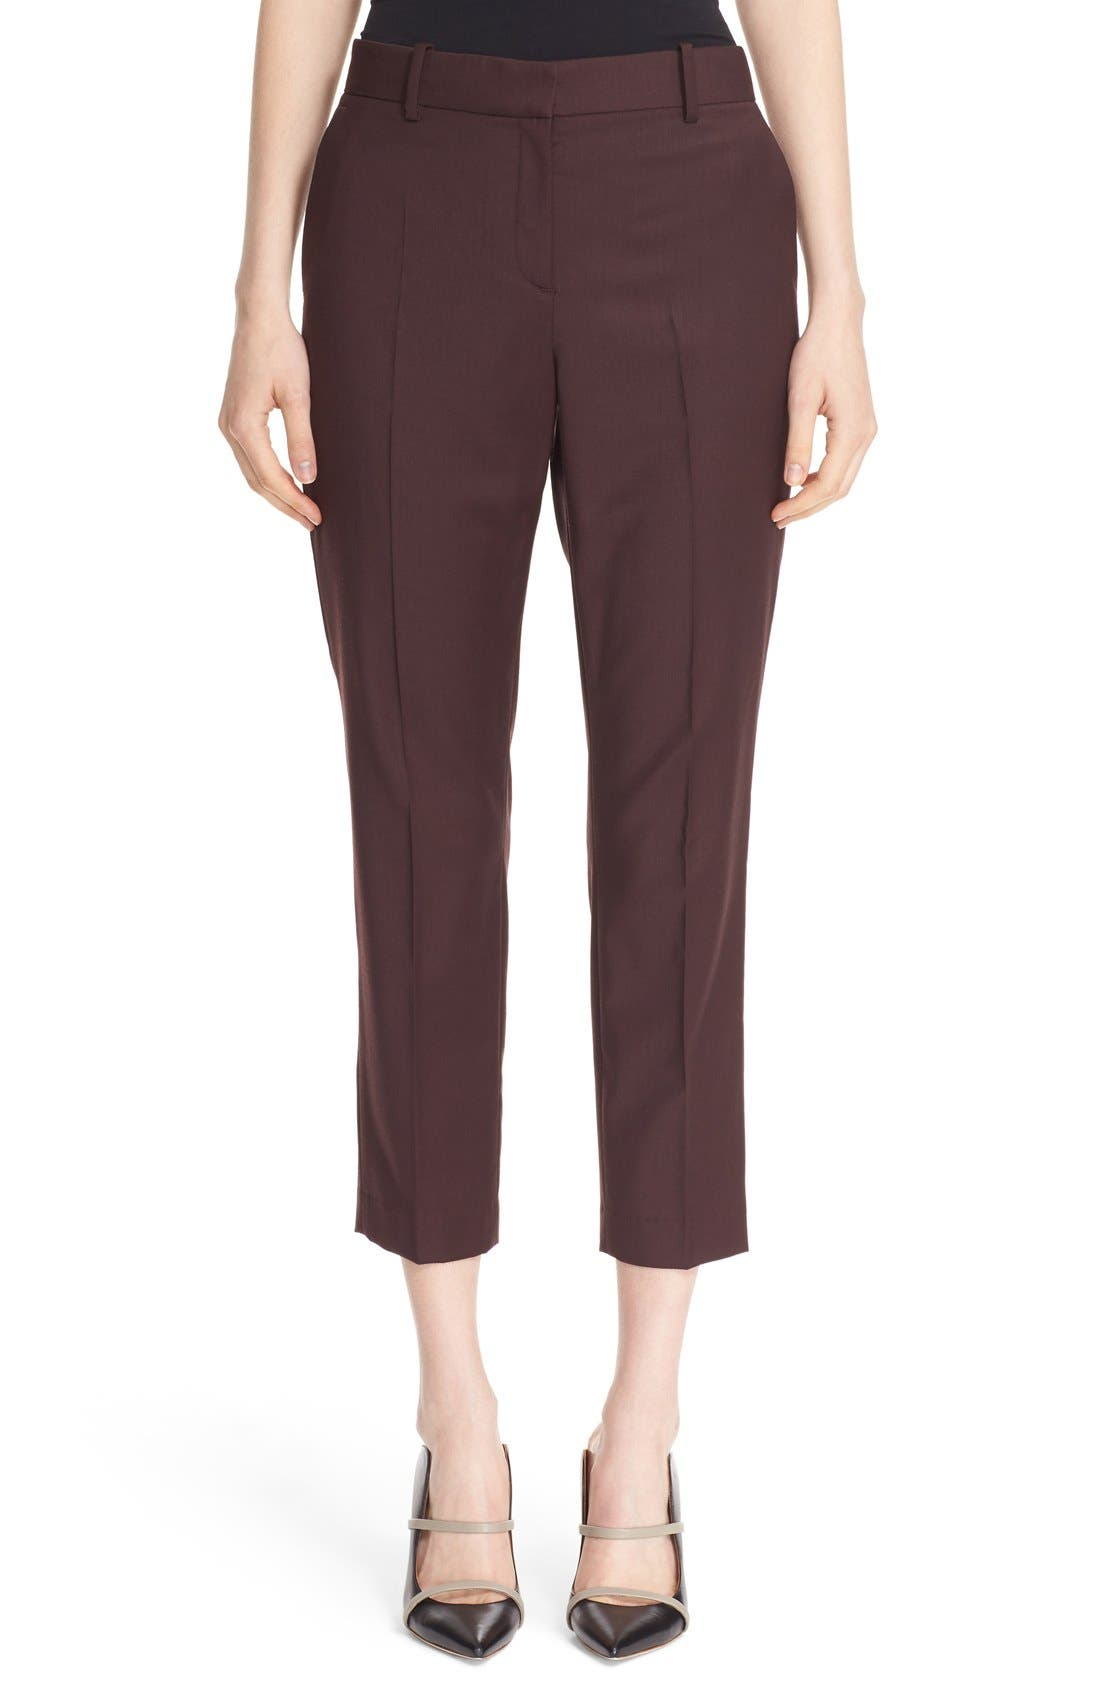 Main Image - Theory 'Treeca Continuous' Wool Blend Cigarette Pants